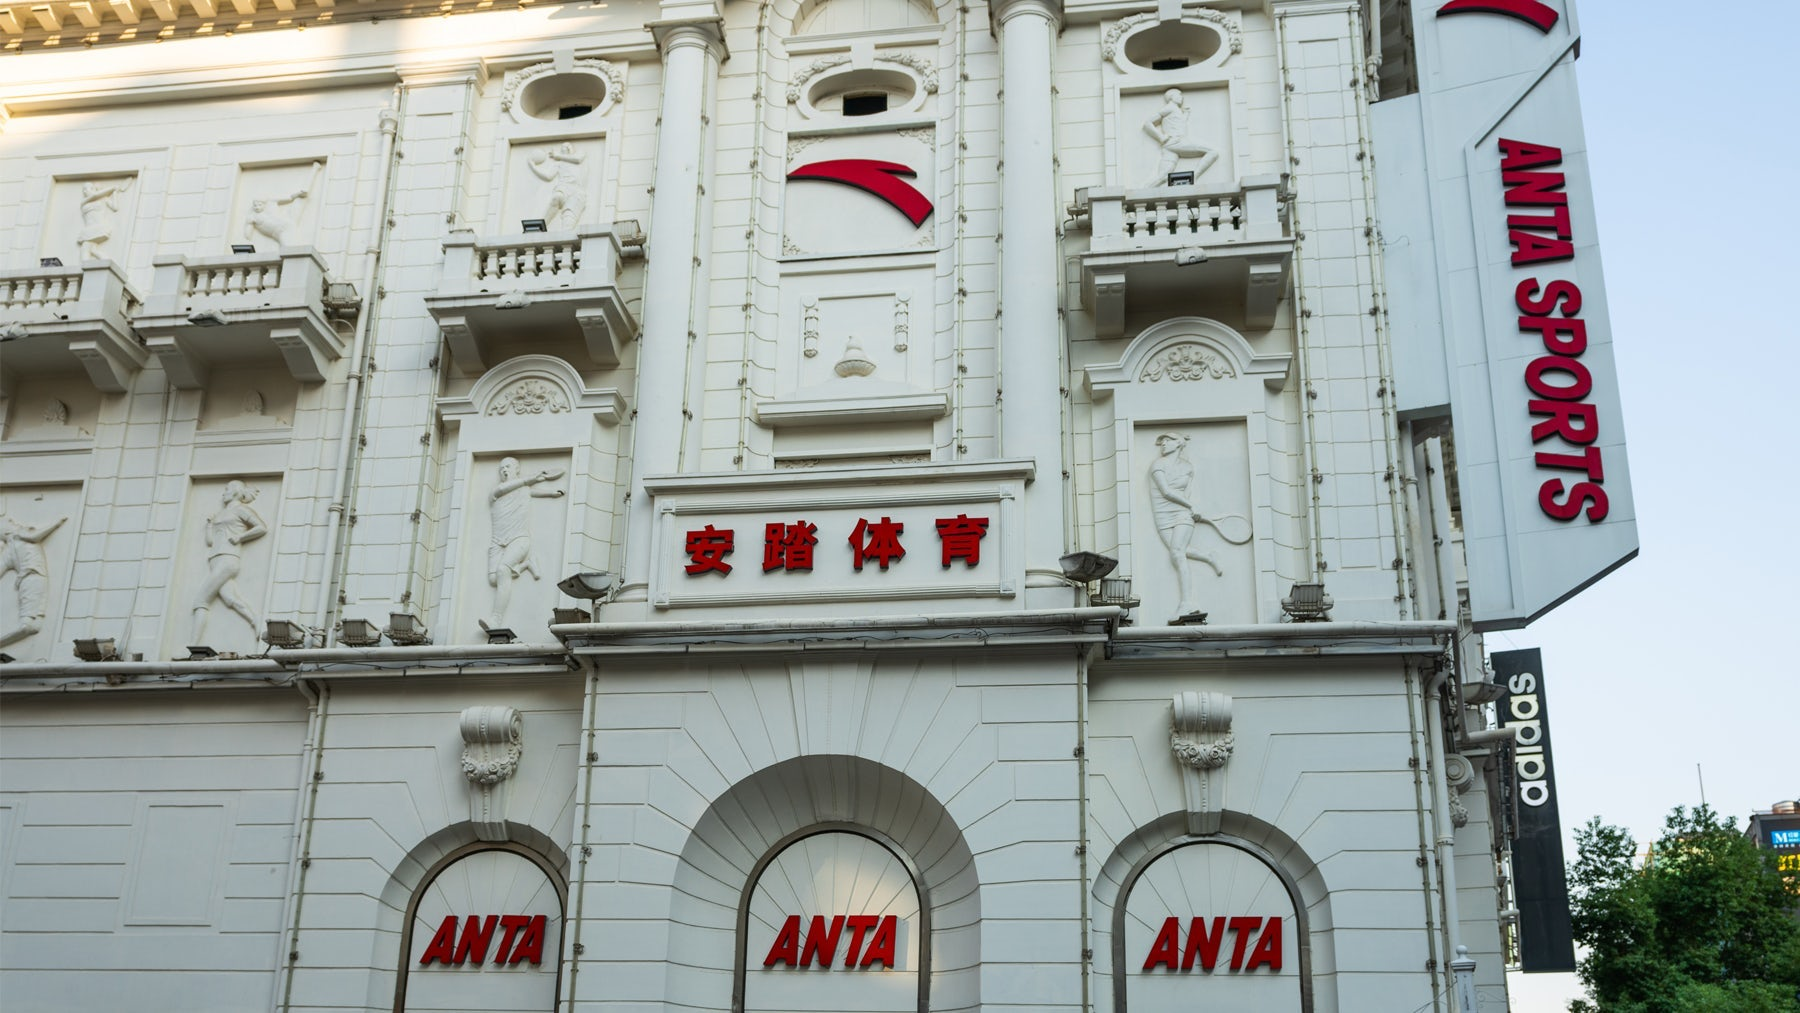 Outside an Anta Sports store | Source: Shutterstock